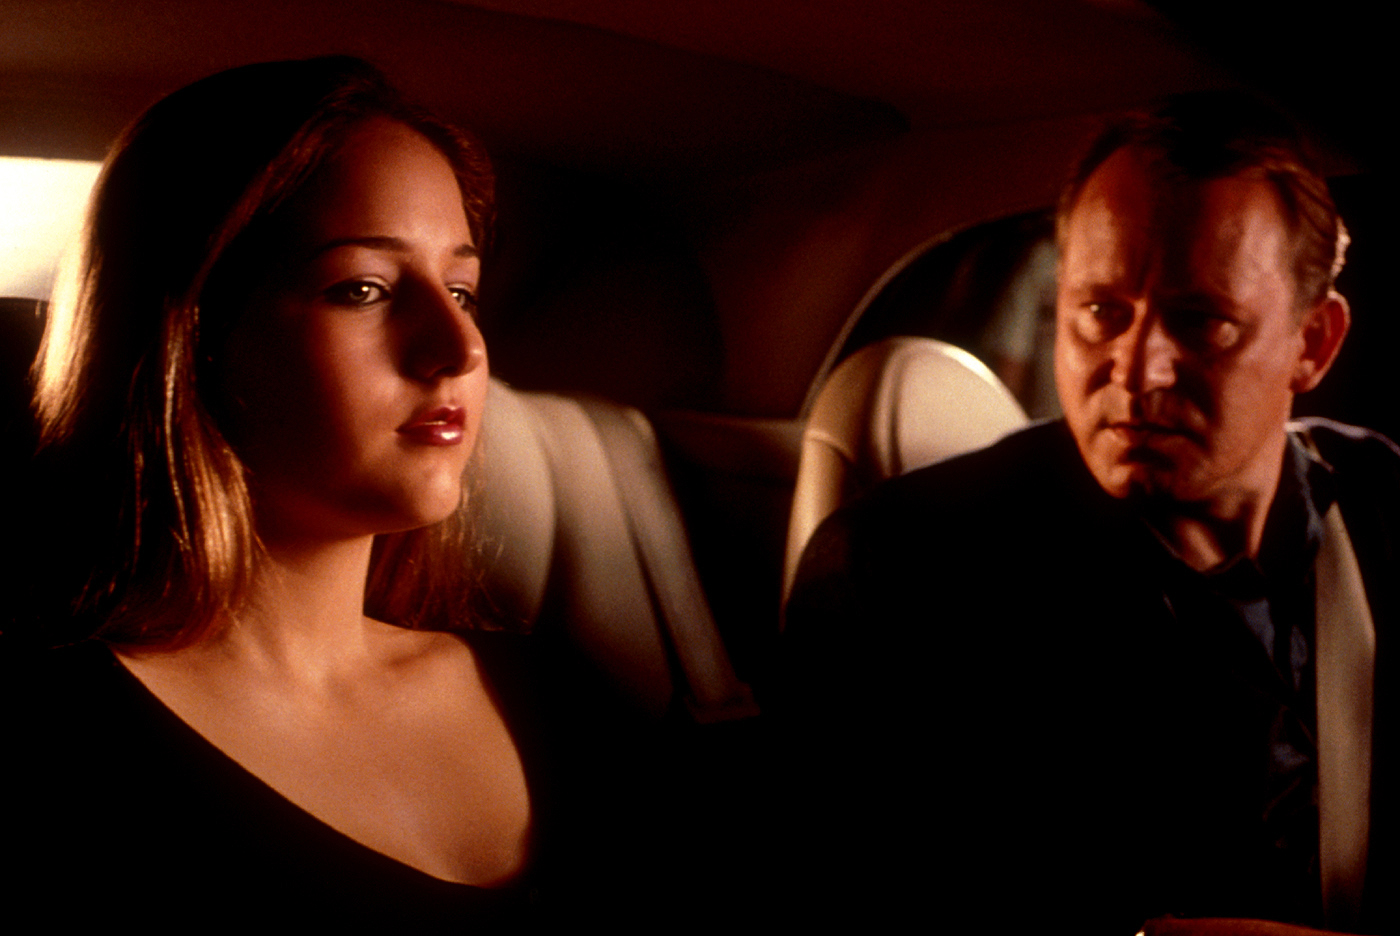 Leelee Sobieski and sinister stepfather Stellan Skarsgård in The Glass House (2001)